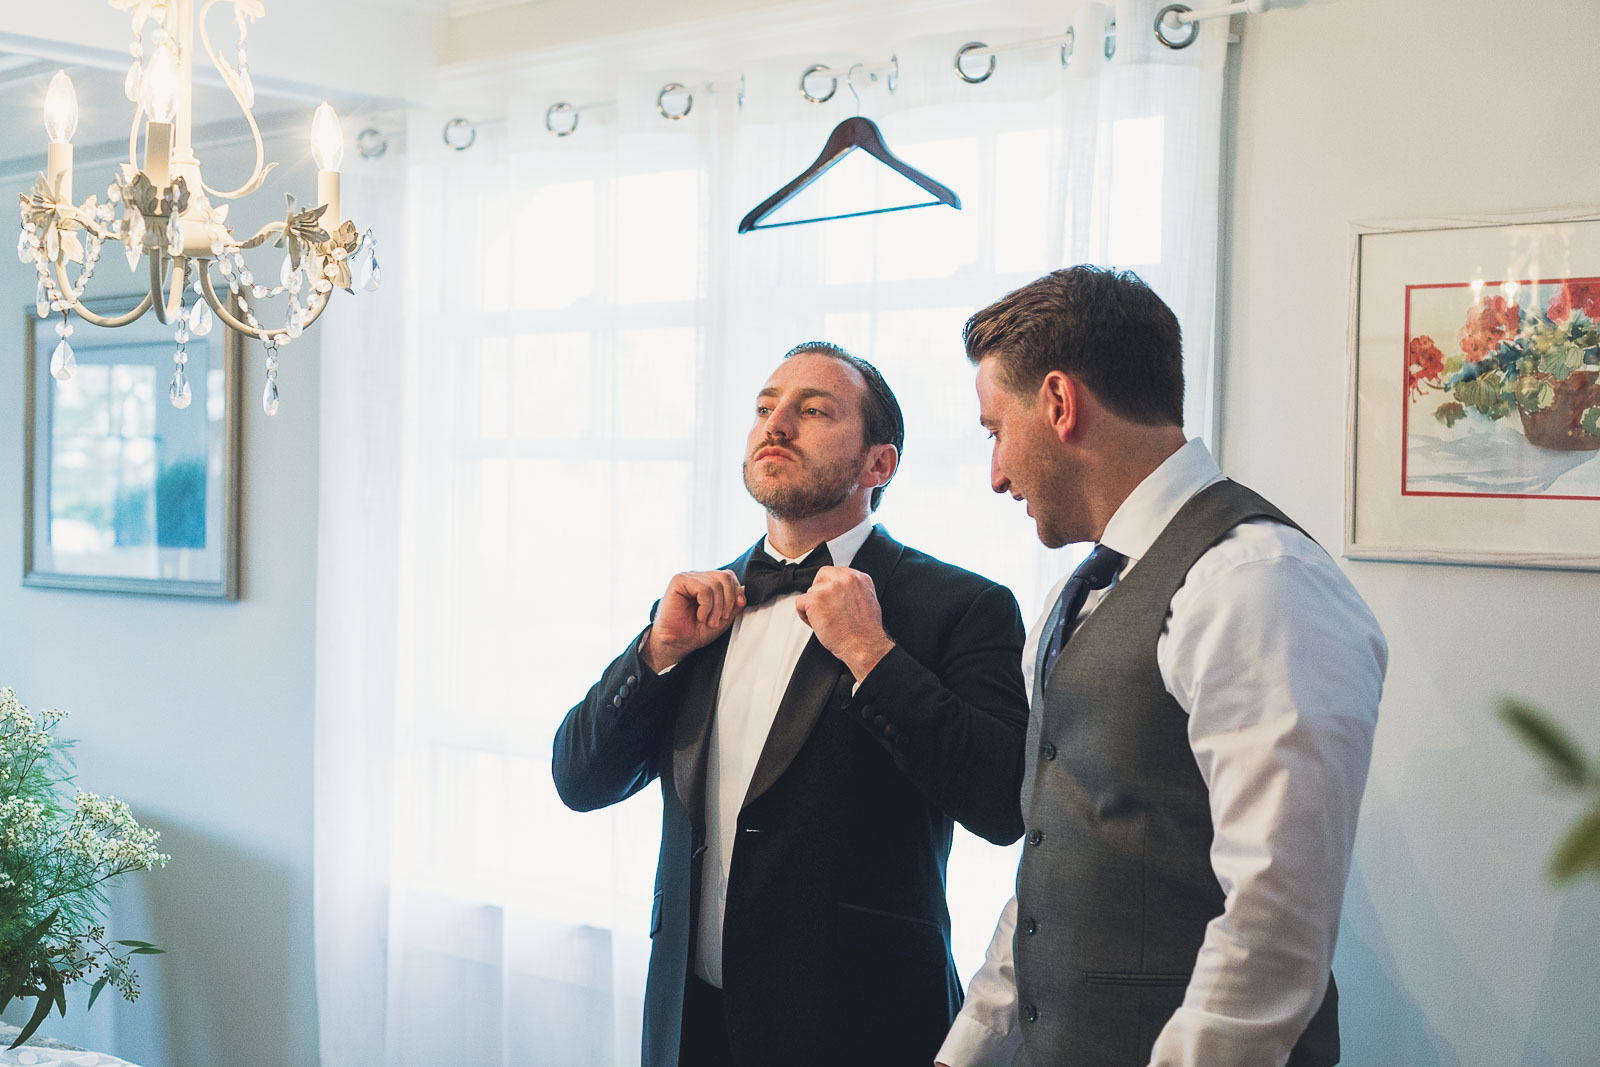 Groom adjusts tie